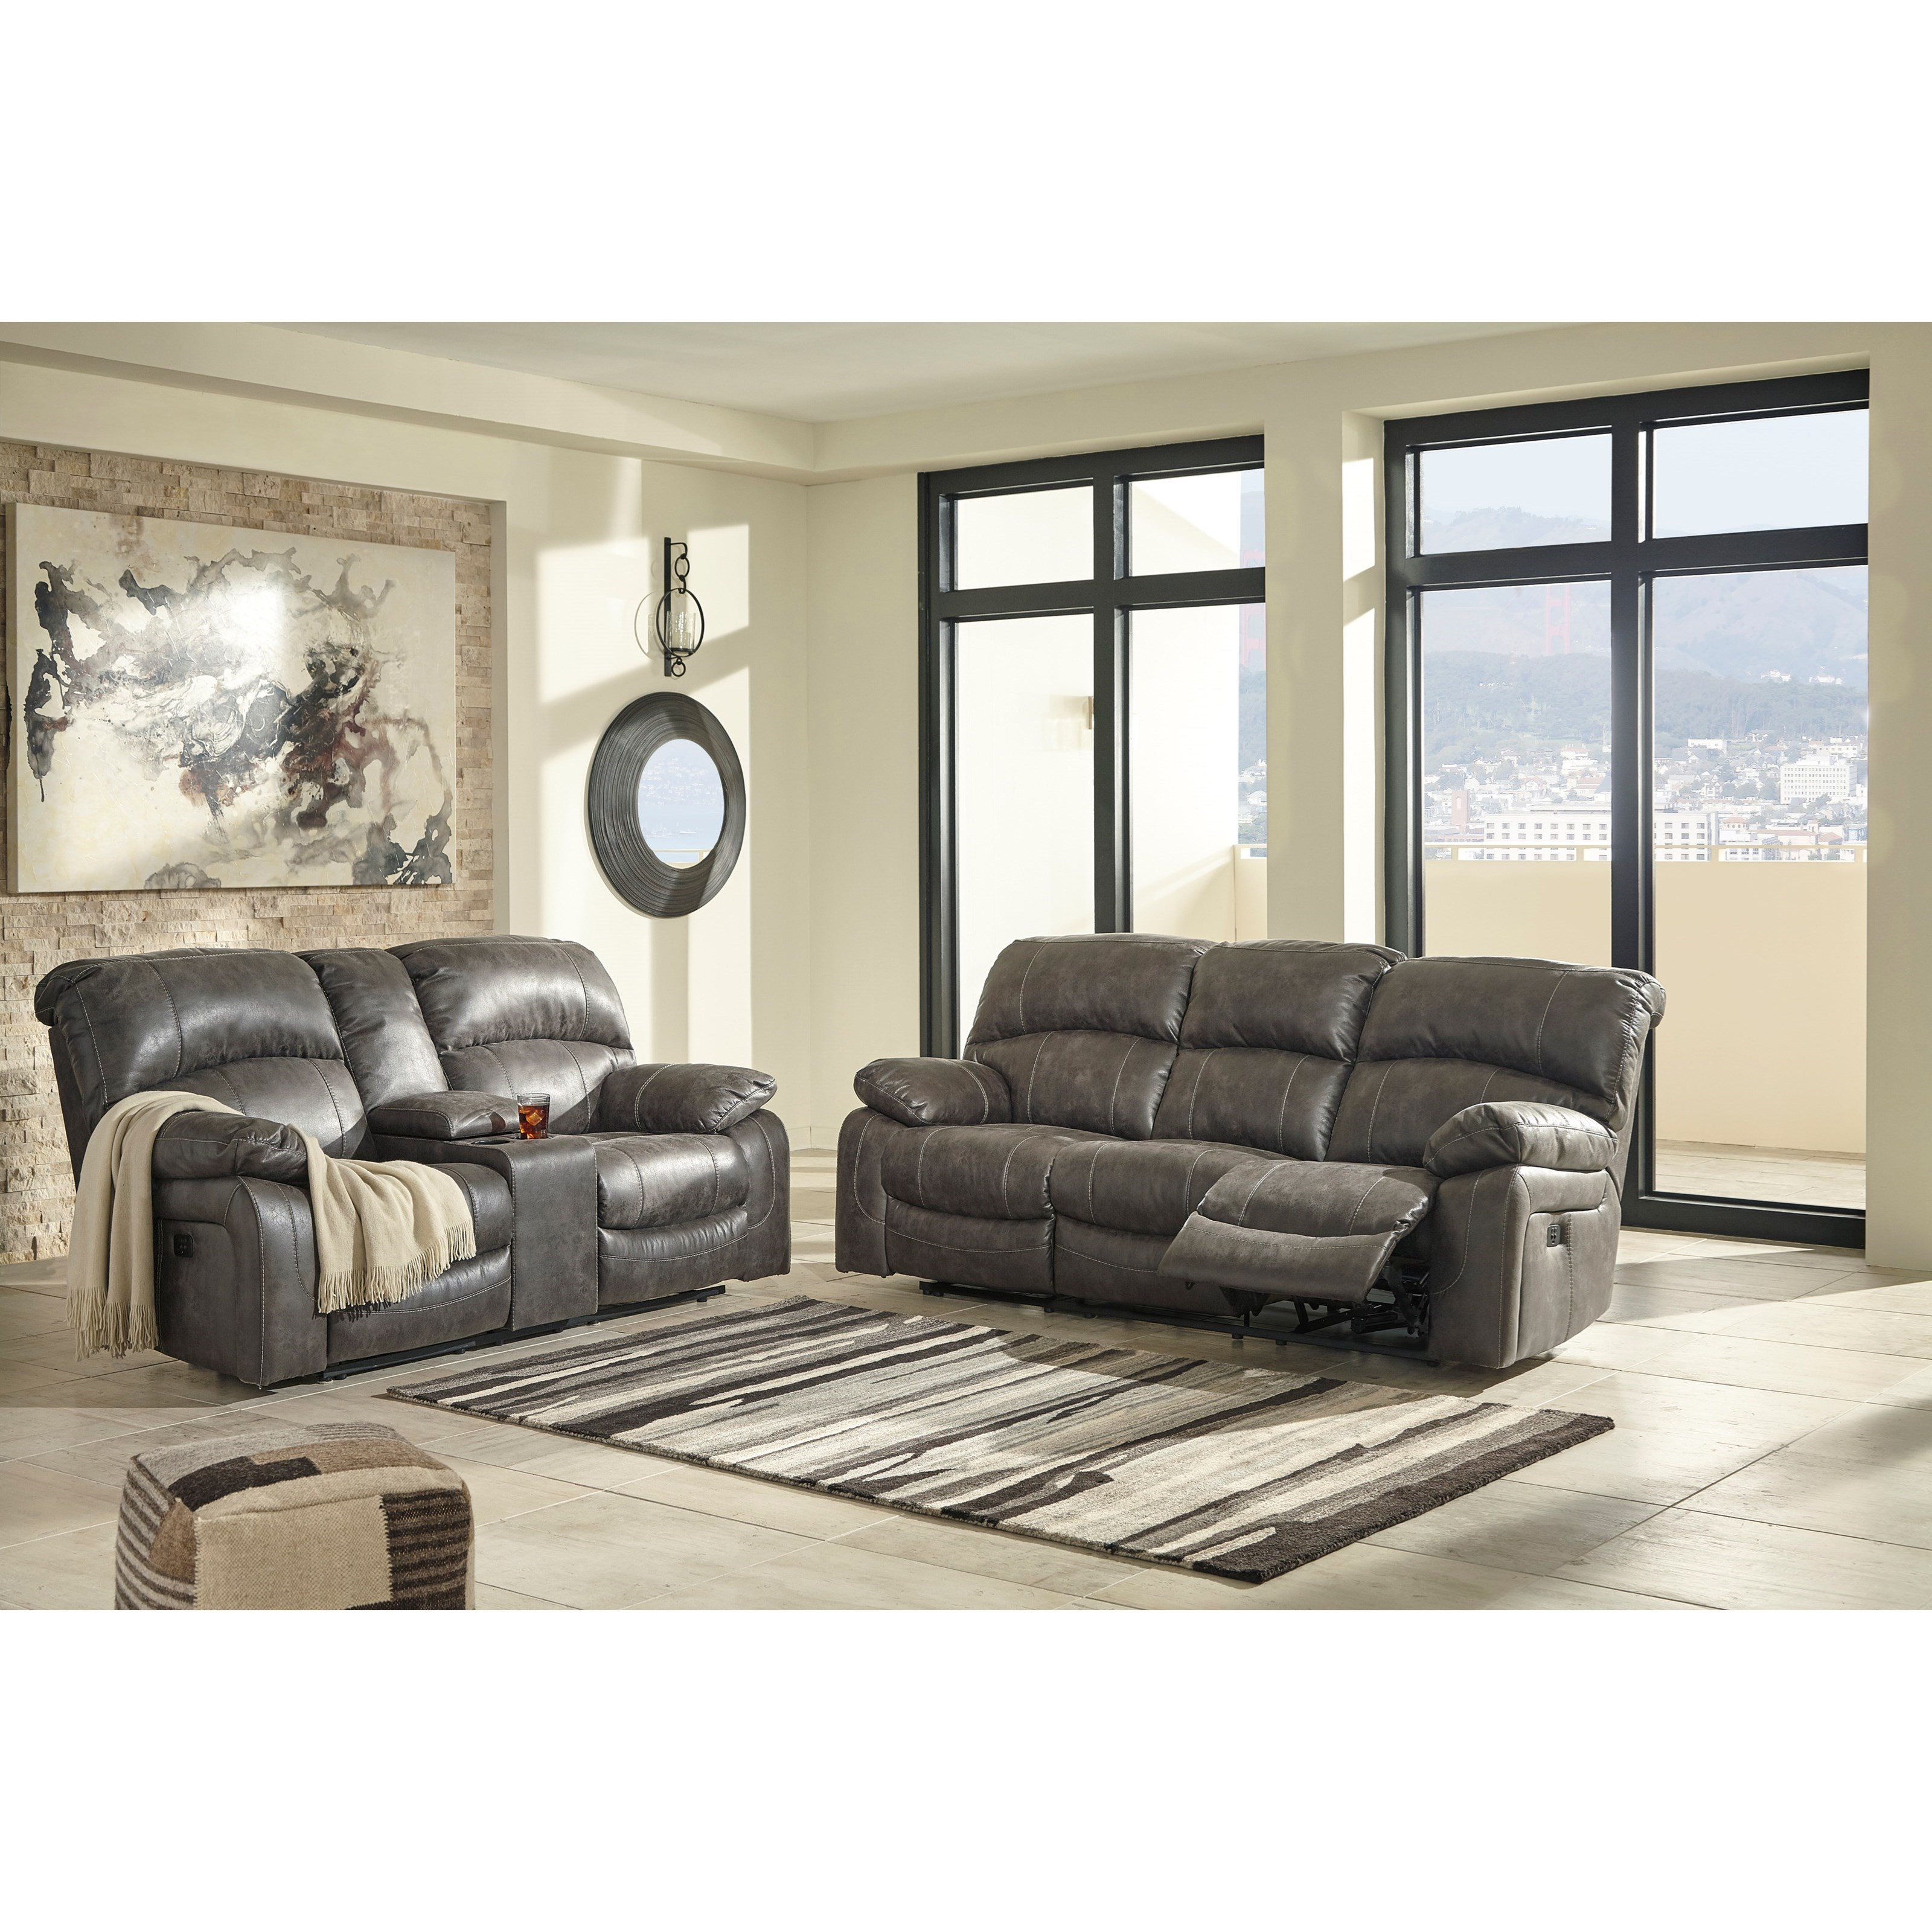 Signature Design by Ashley Dunwell Reclining Living Room Group ...